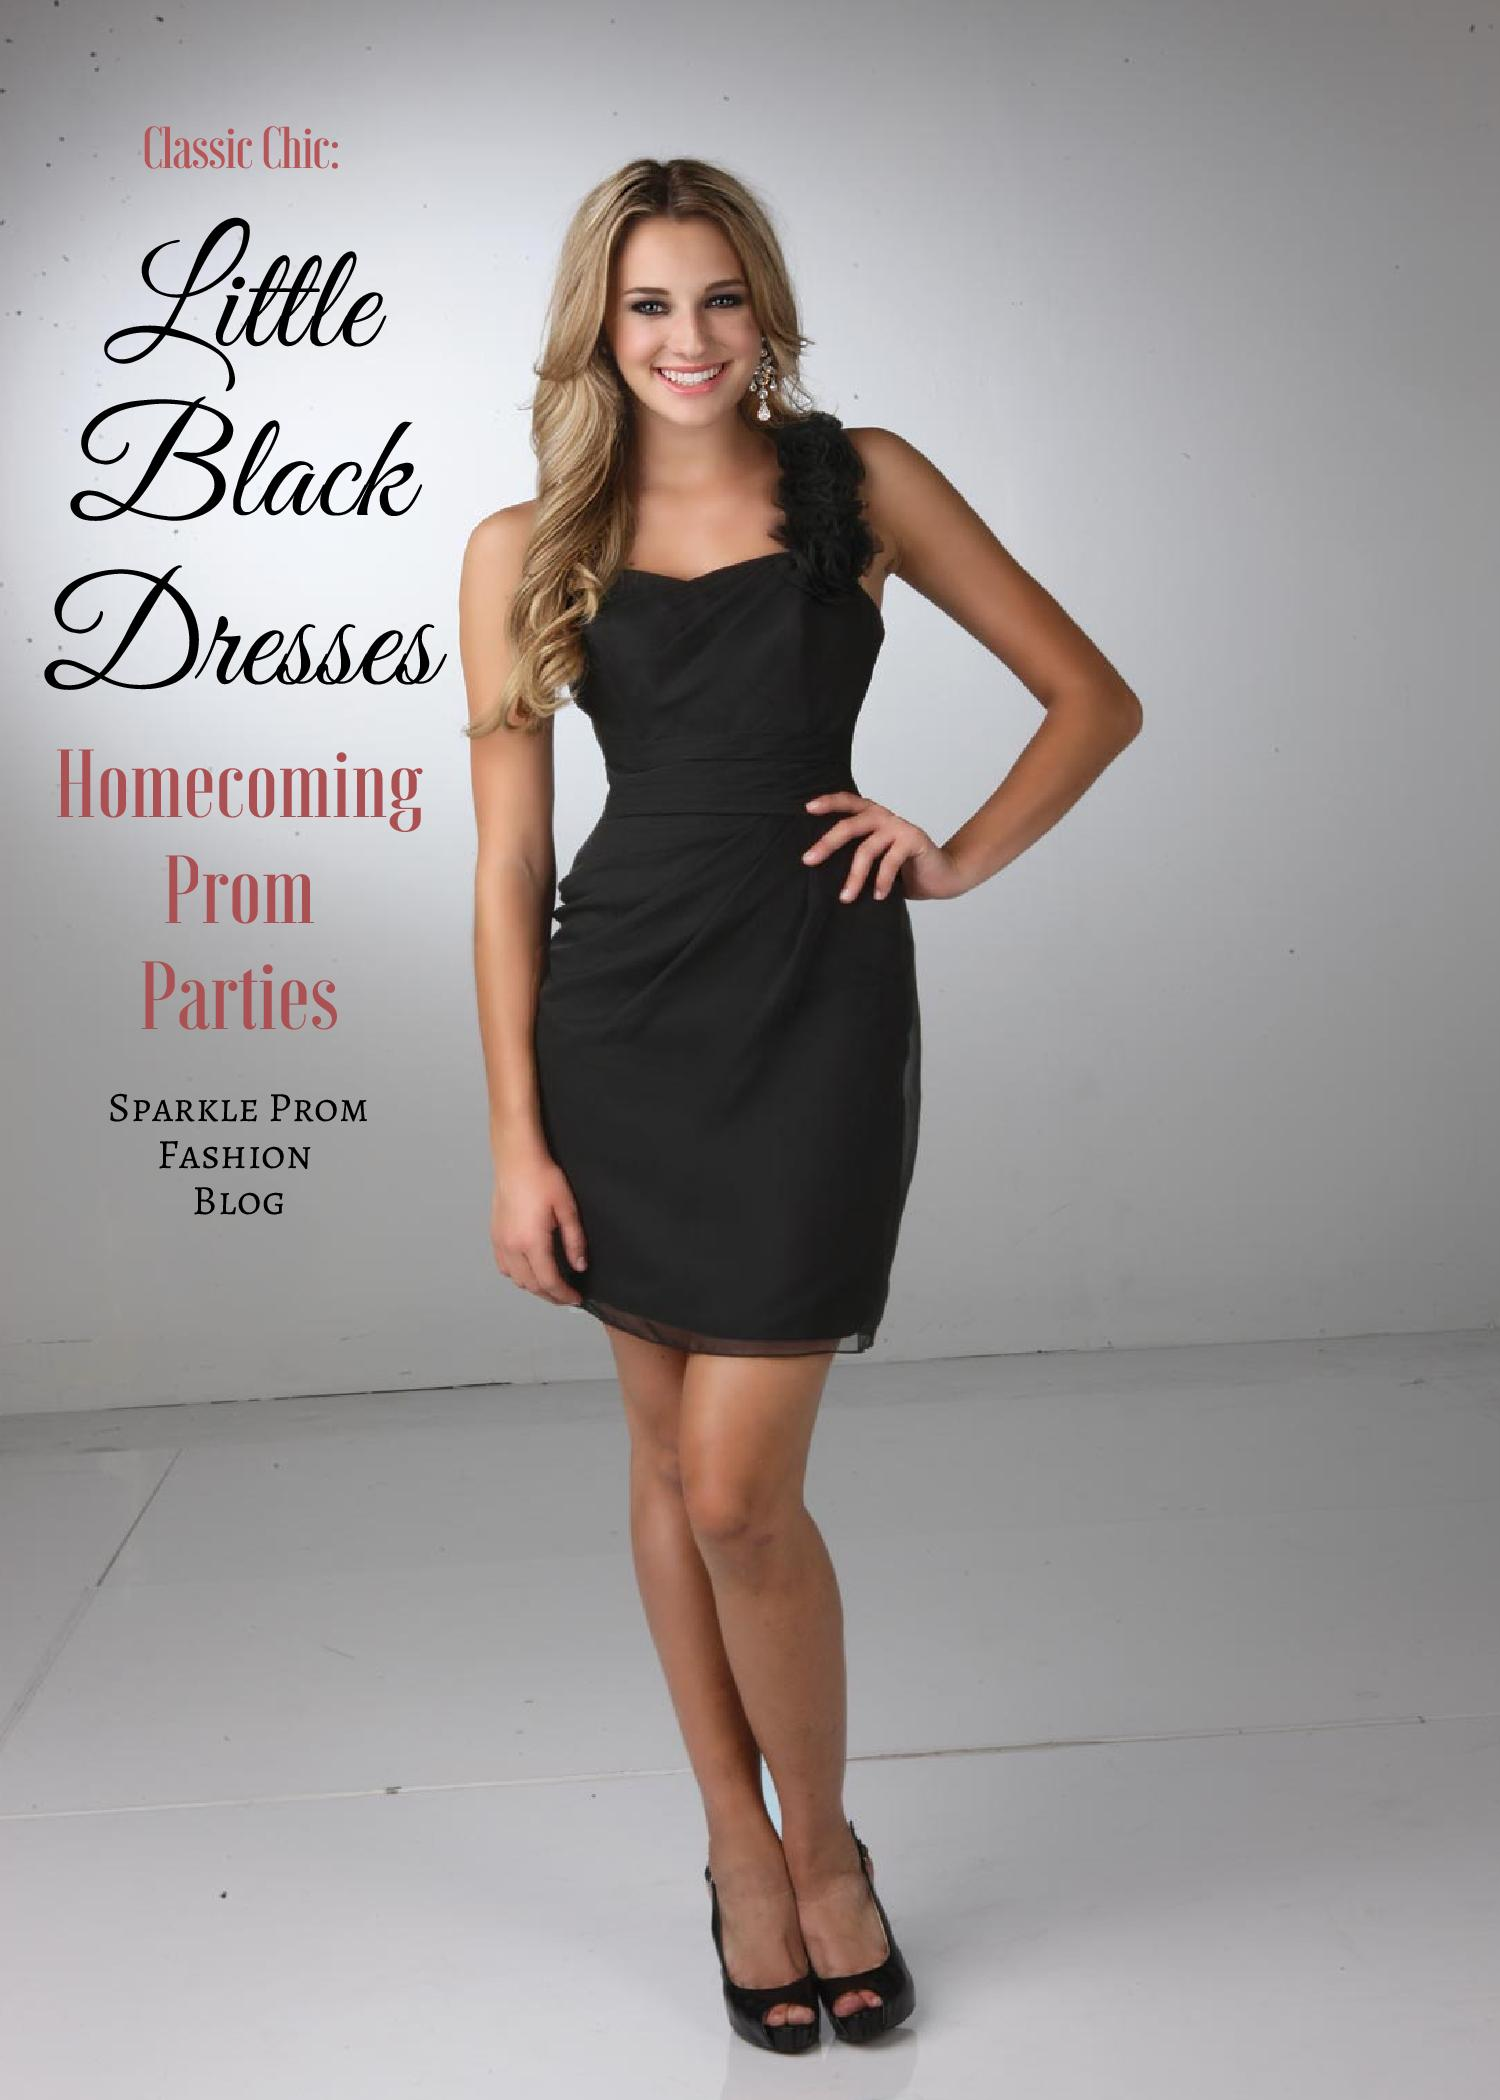 Little Black Dresses for Homecoming, Prom & Parties – Sparkle Prom Fashion Blog